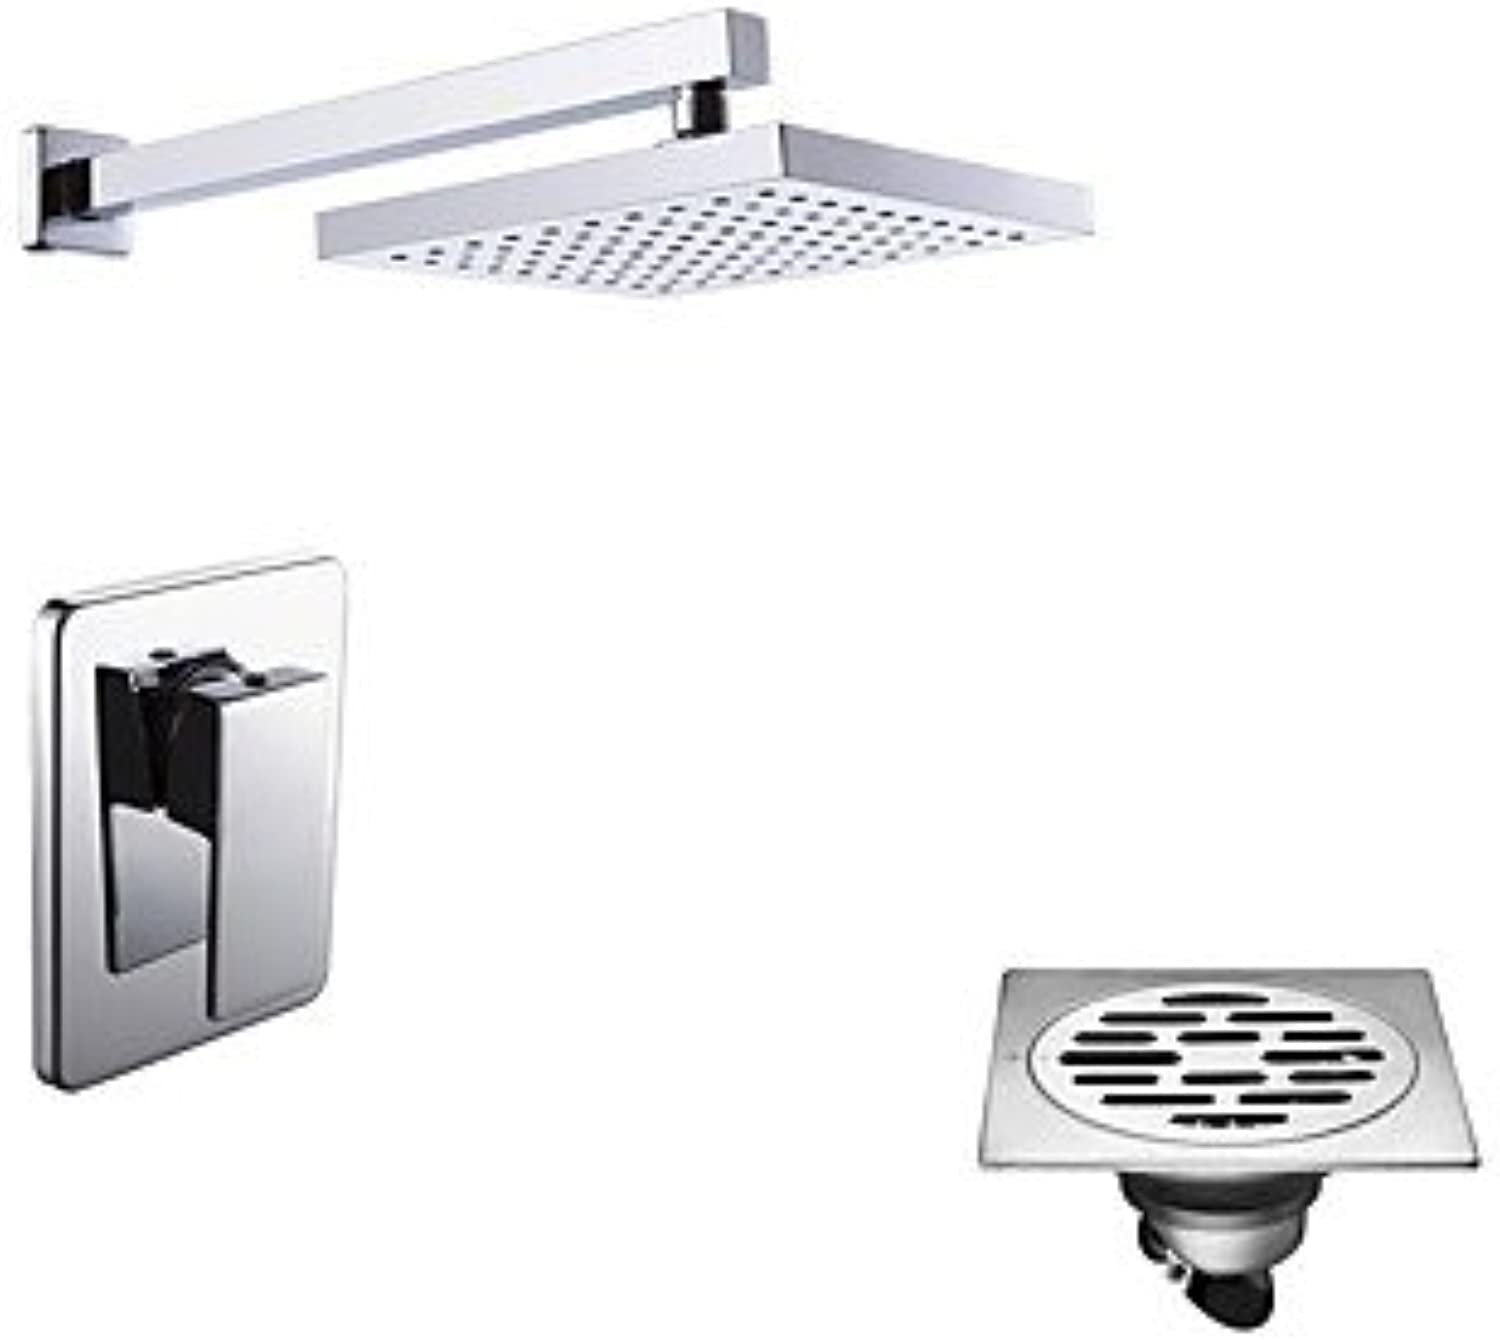 Comtemporary Shower Only Rain Shower with Ceramic Valve One Hole for Chrome , Shower Faucet